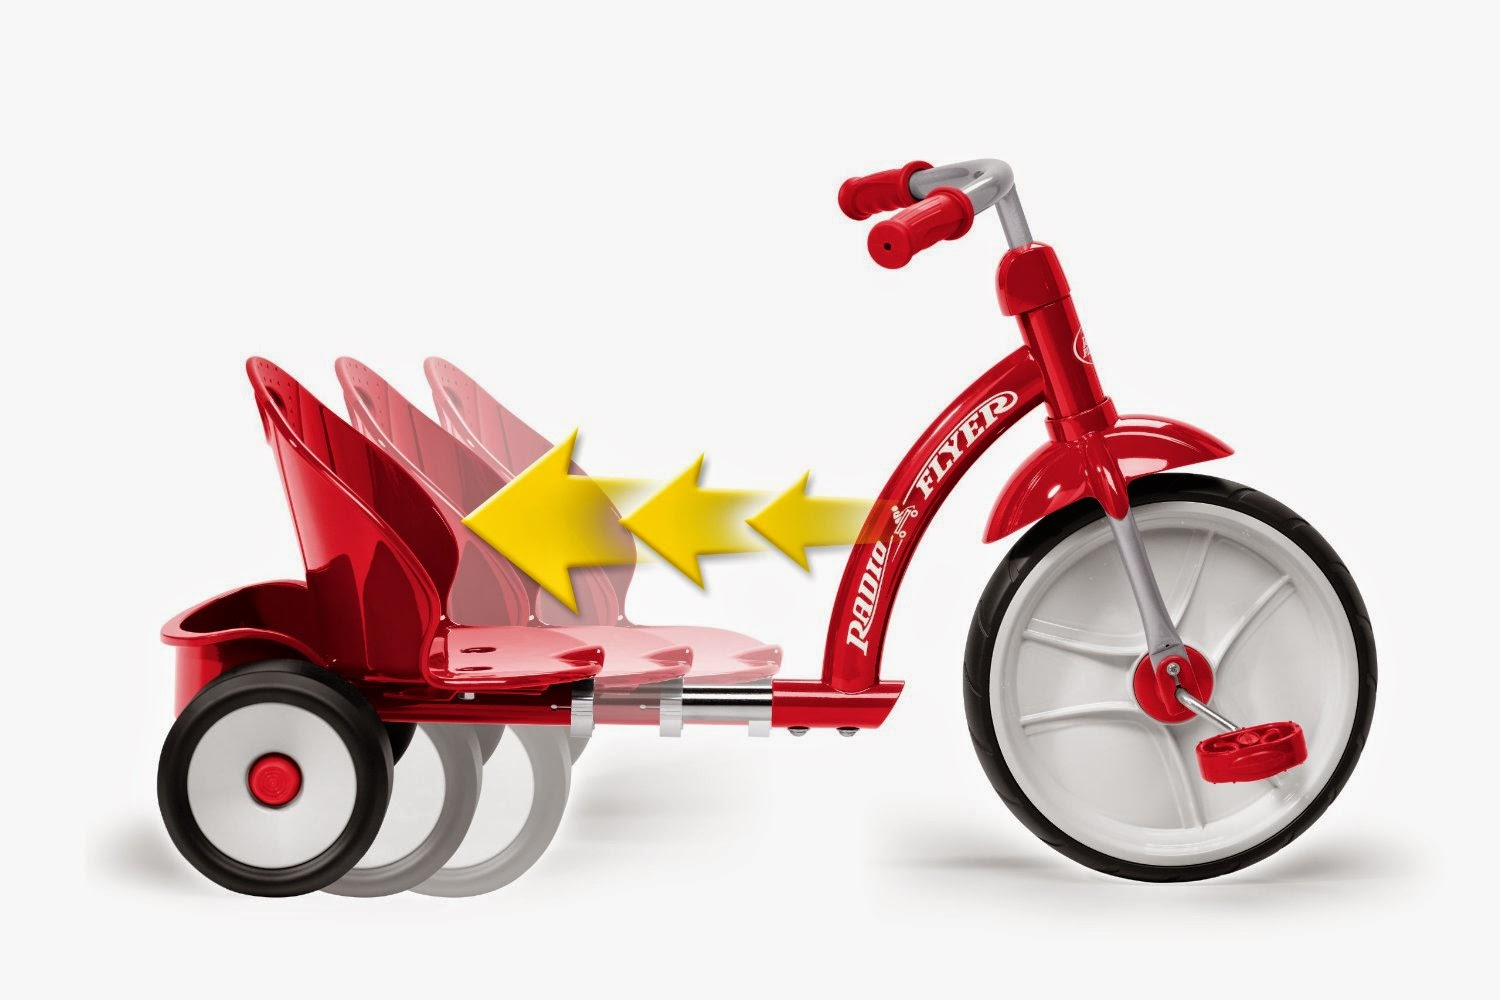 Radio Flyer 10 Classic Tricycle - Red : Target Old fashioned big wheel tricycle